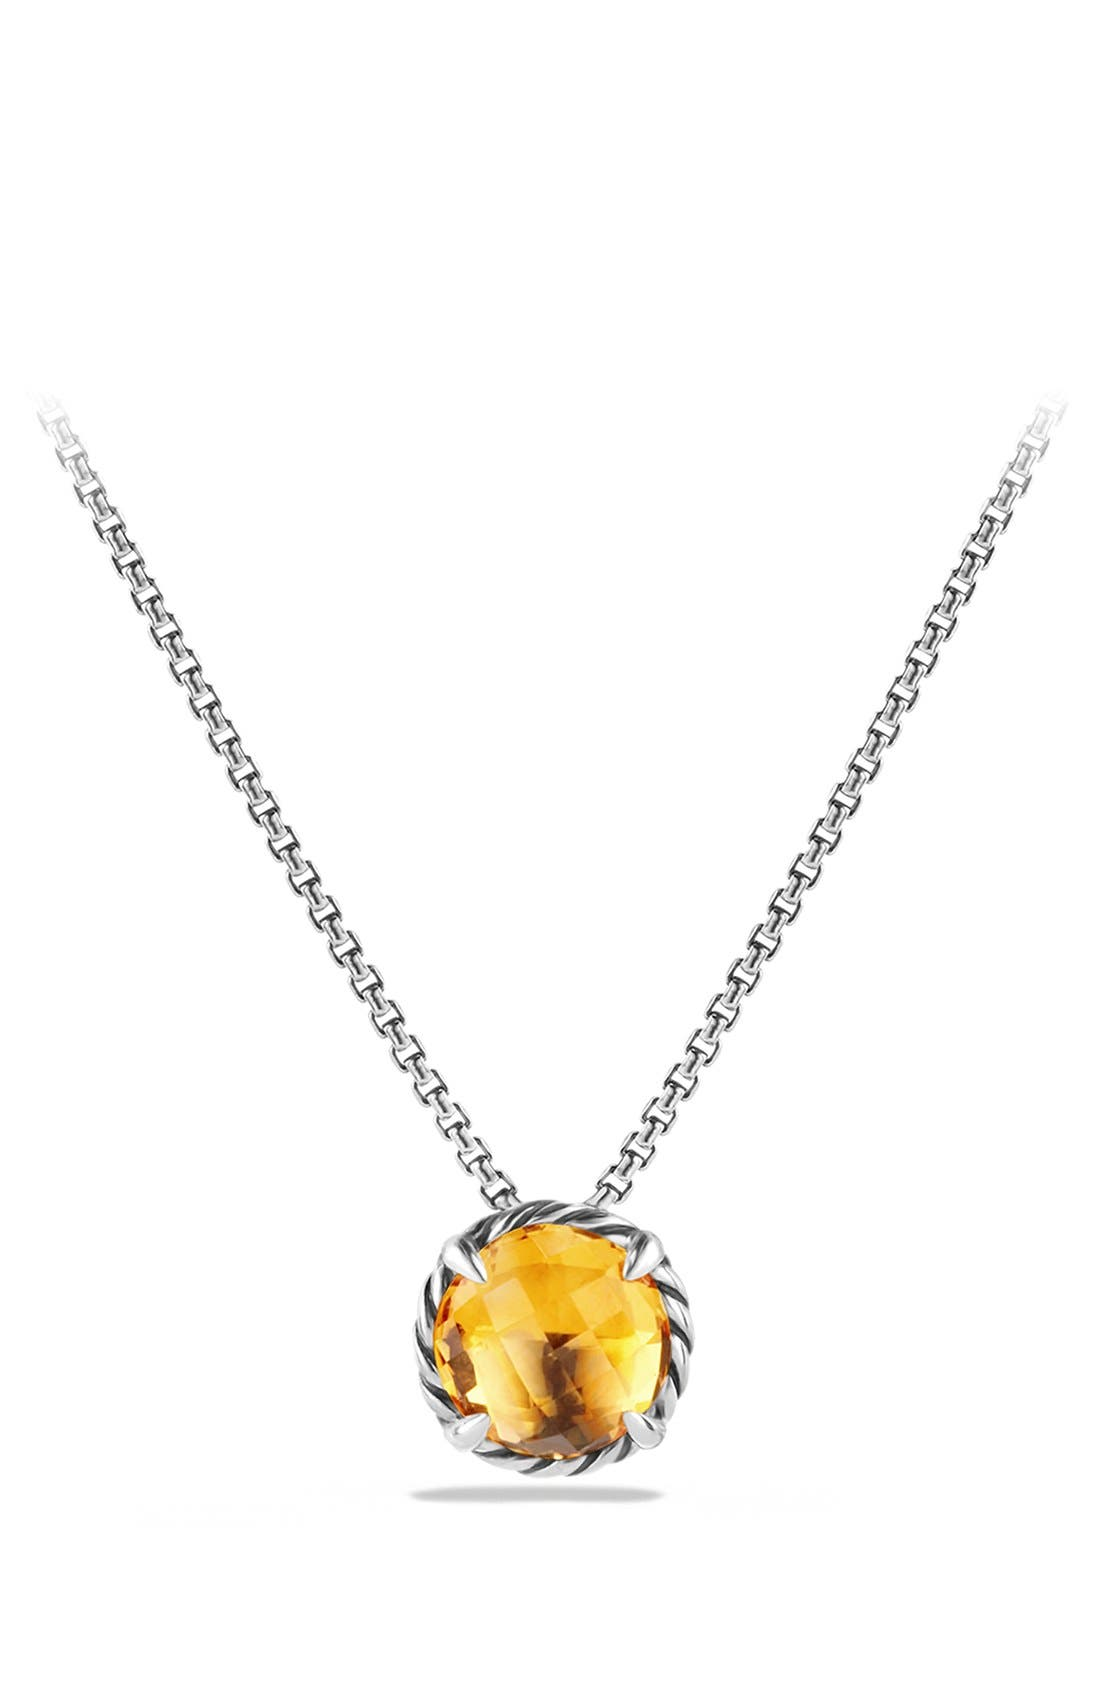 David Yurman 'Châtelaine' Pendant Necklace